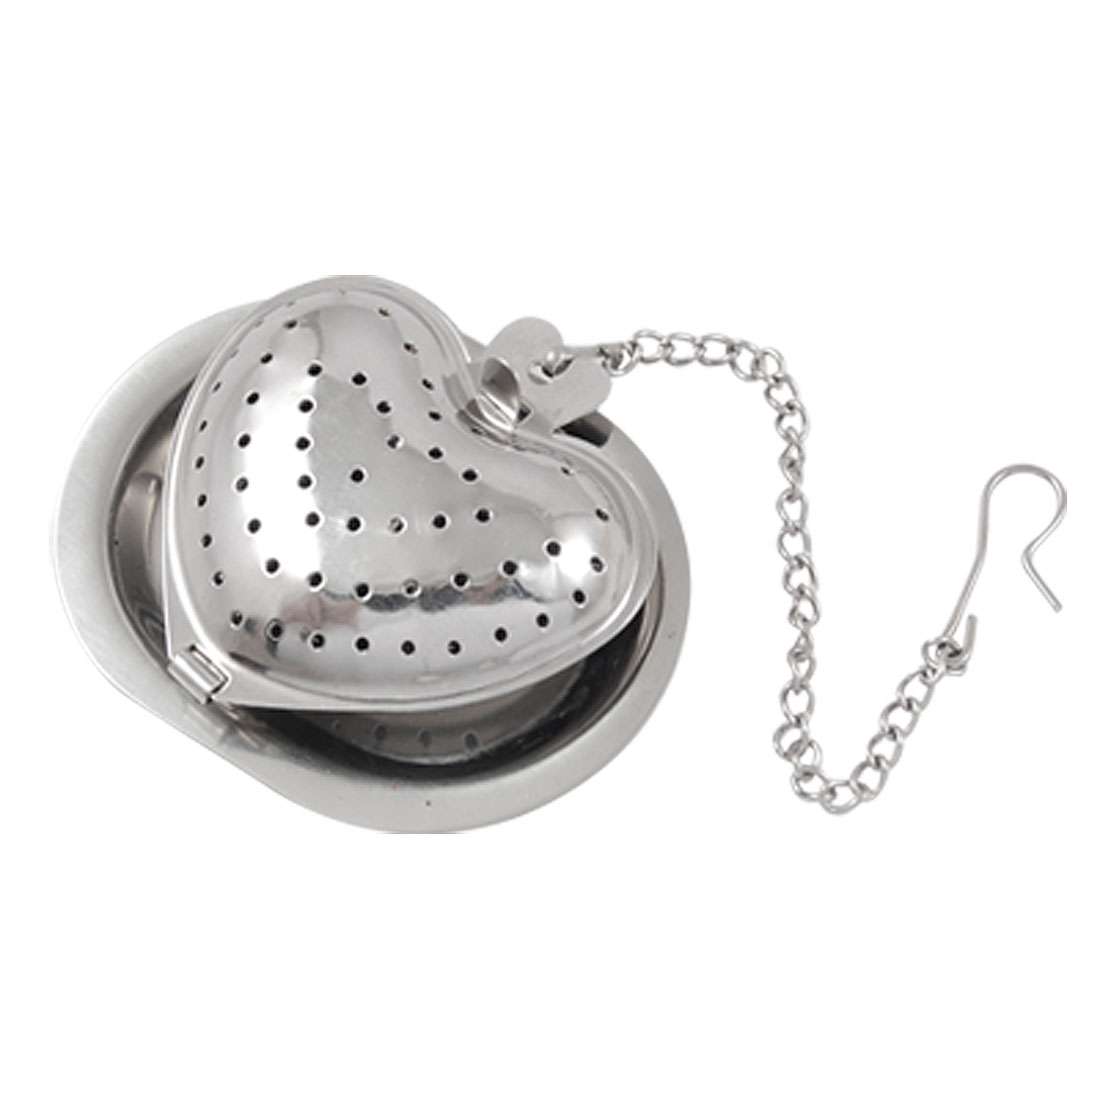 Mini Tray Heart Shape Funny Tea Ball Infuser Strainer Steeper with Chain